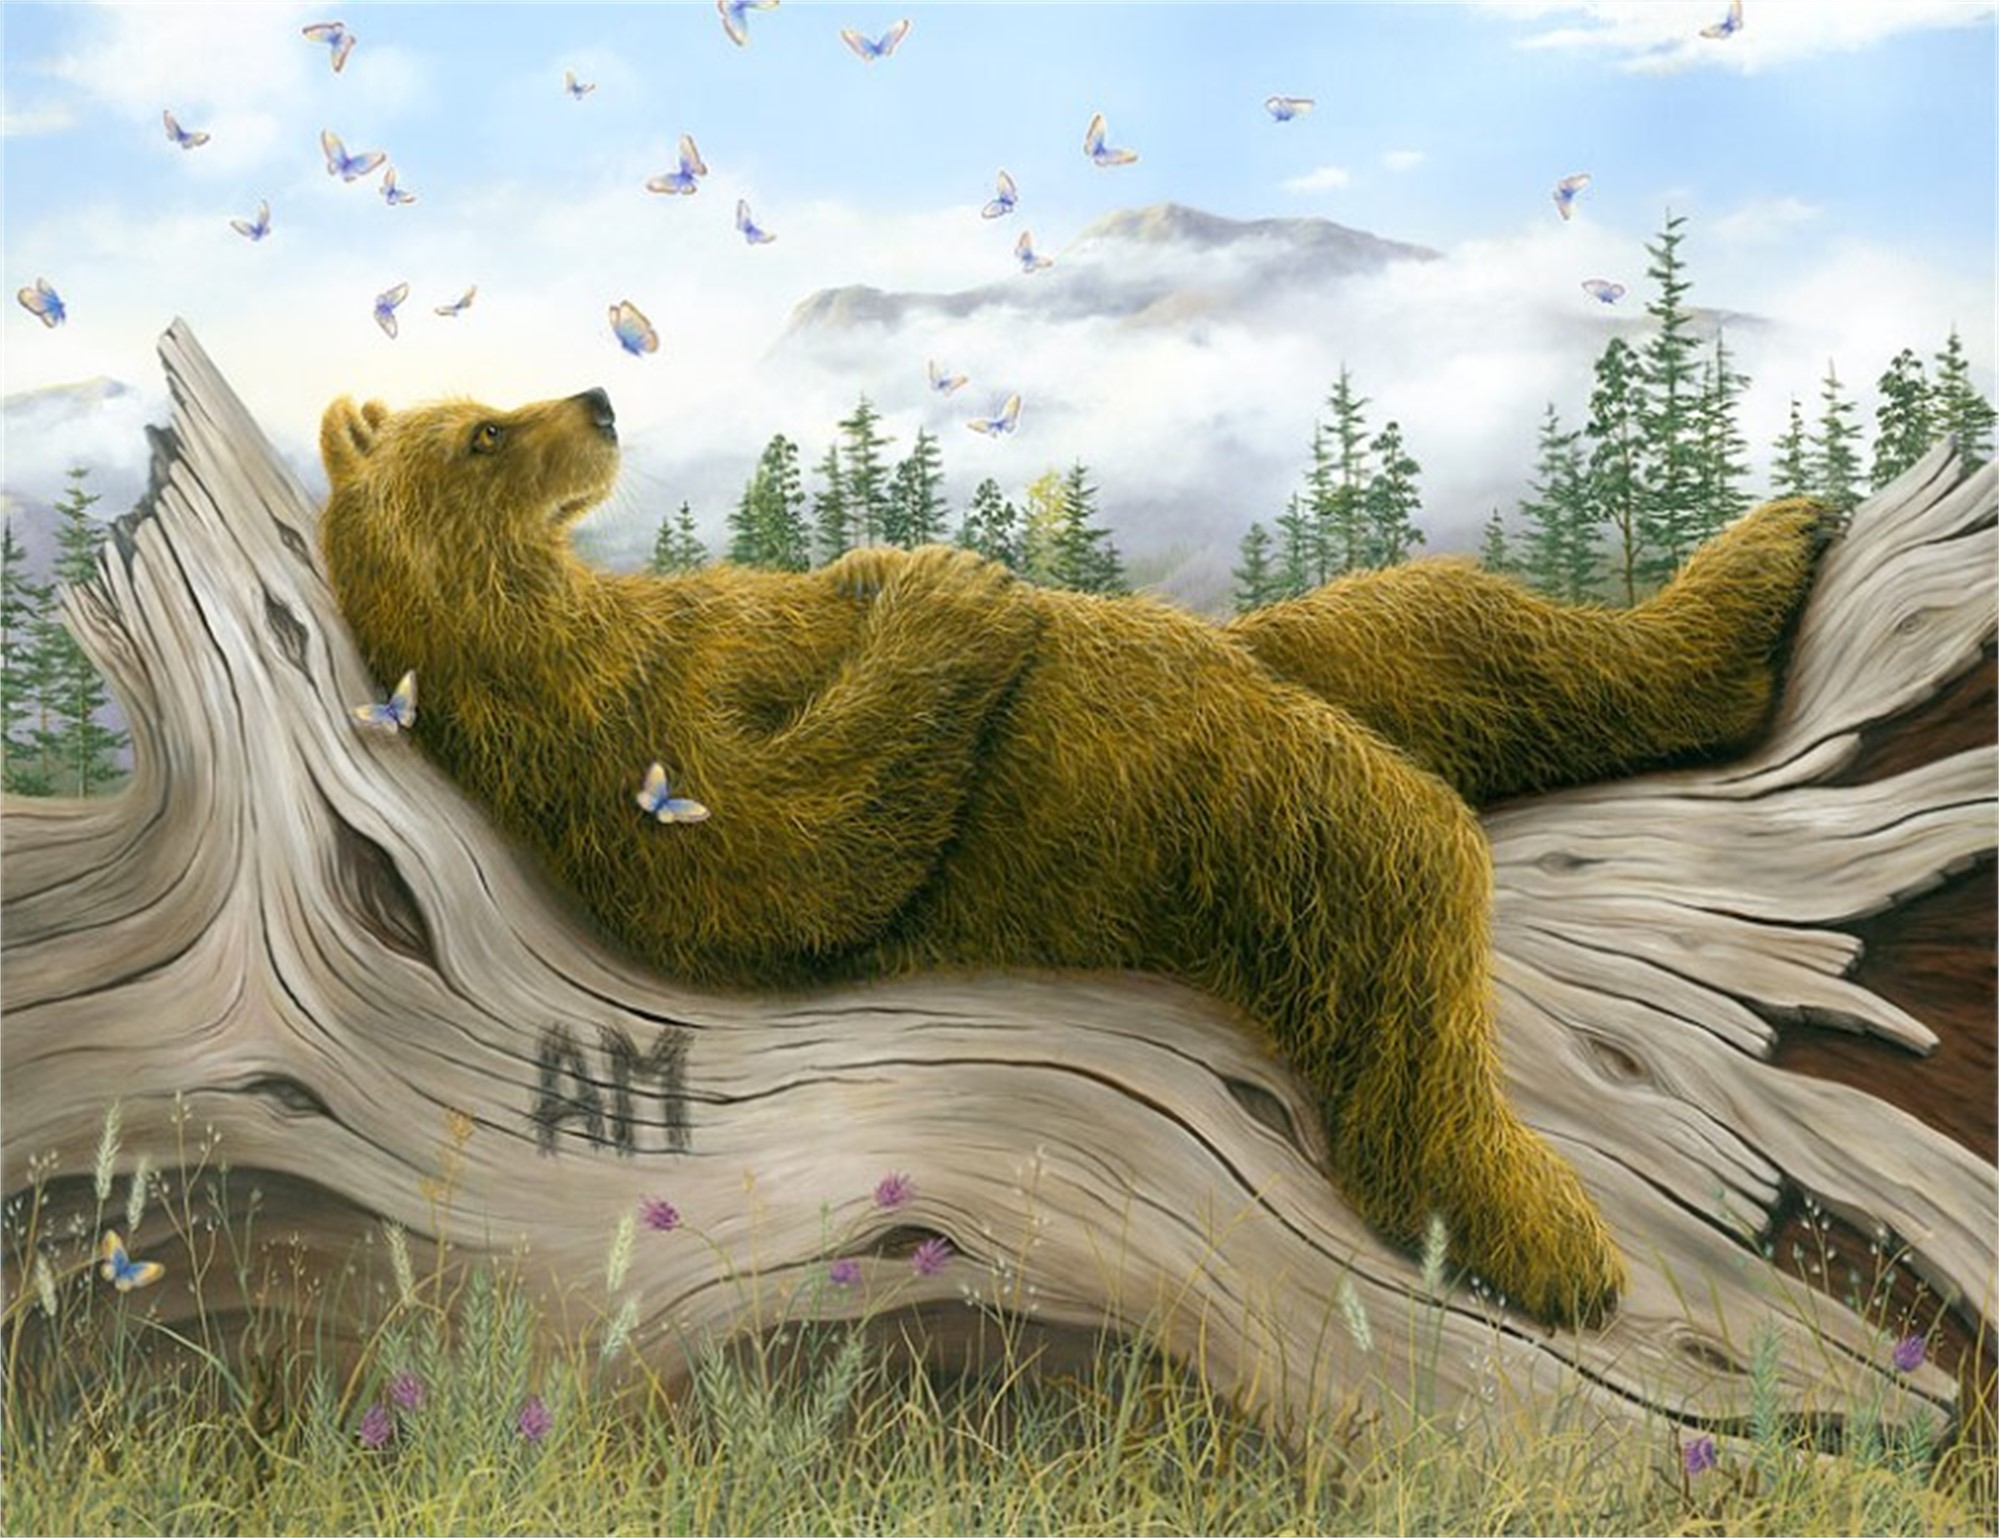 AM2 (Small Works) by Robert Bissell